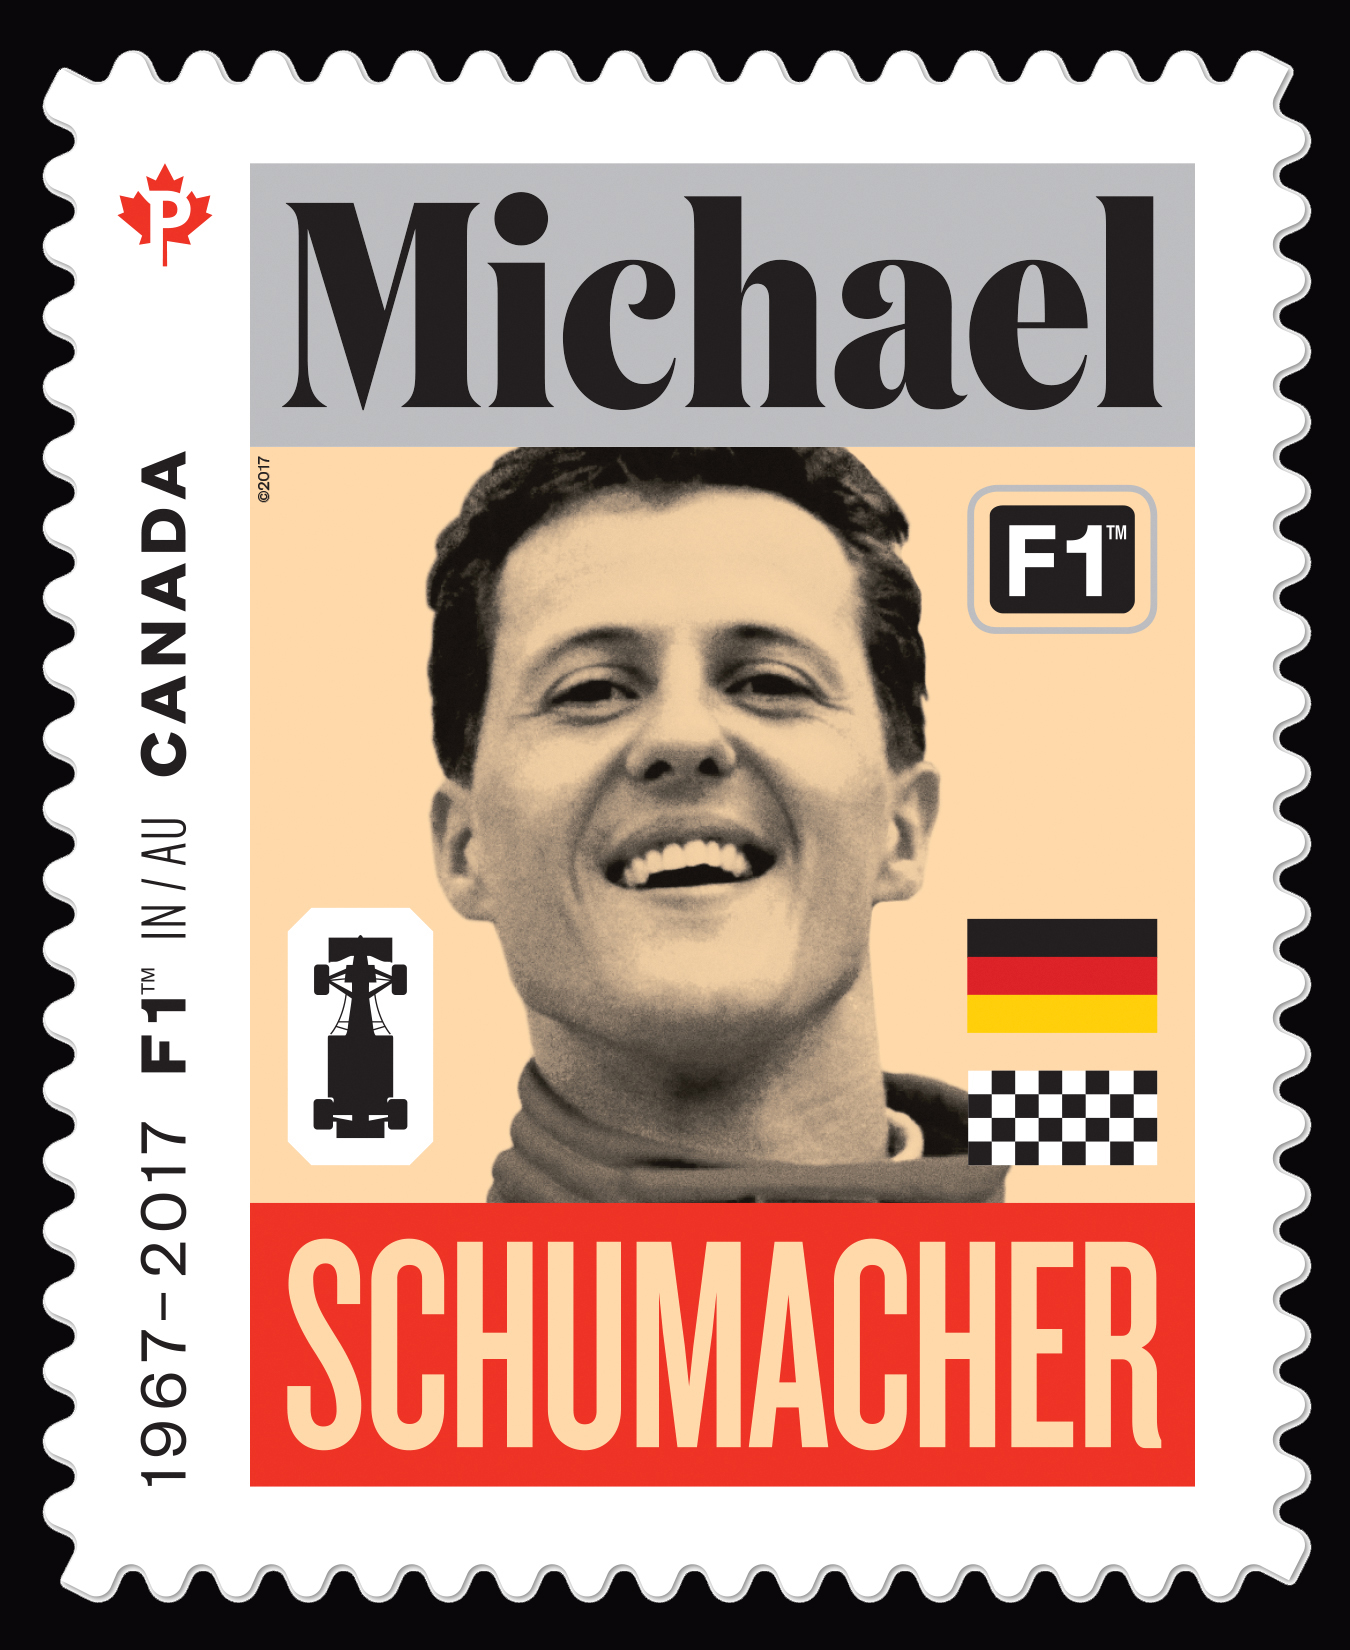 Michael Schumacher - Formula 1 Canada Postage Stamp | Formula 1 Racing - 50th Anniversary